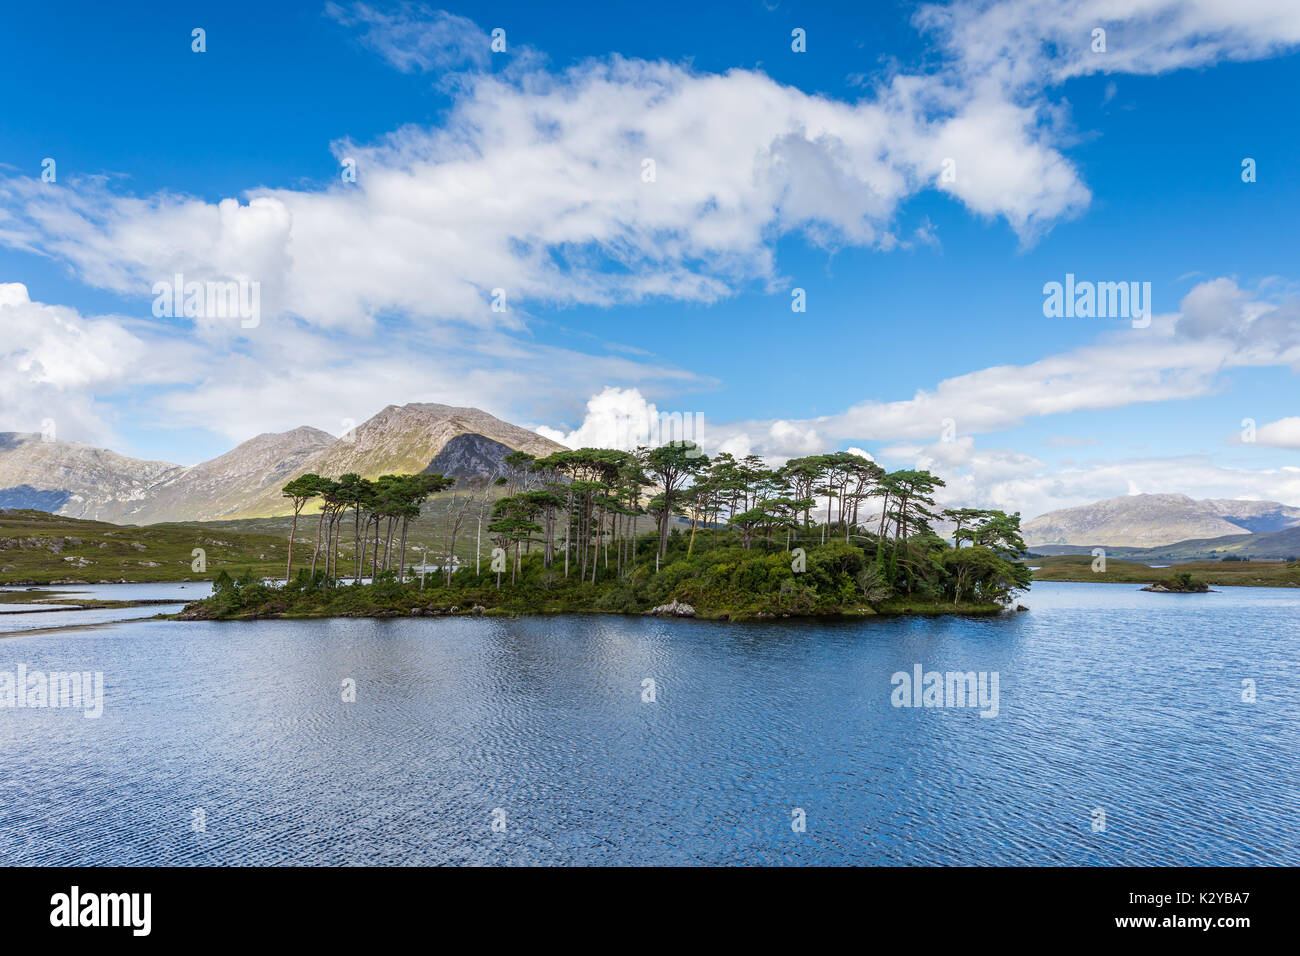 Derryclare Lough is a freshwater lake in the west of Ireland. It is located in the Connemara area of County Galway. Derryclare Lough is located about  - Stock Image